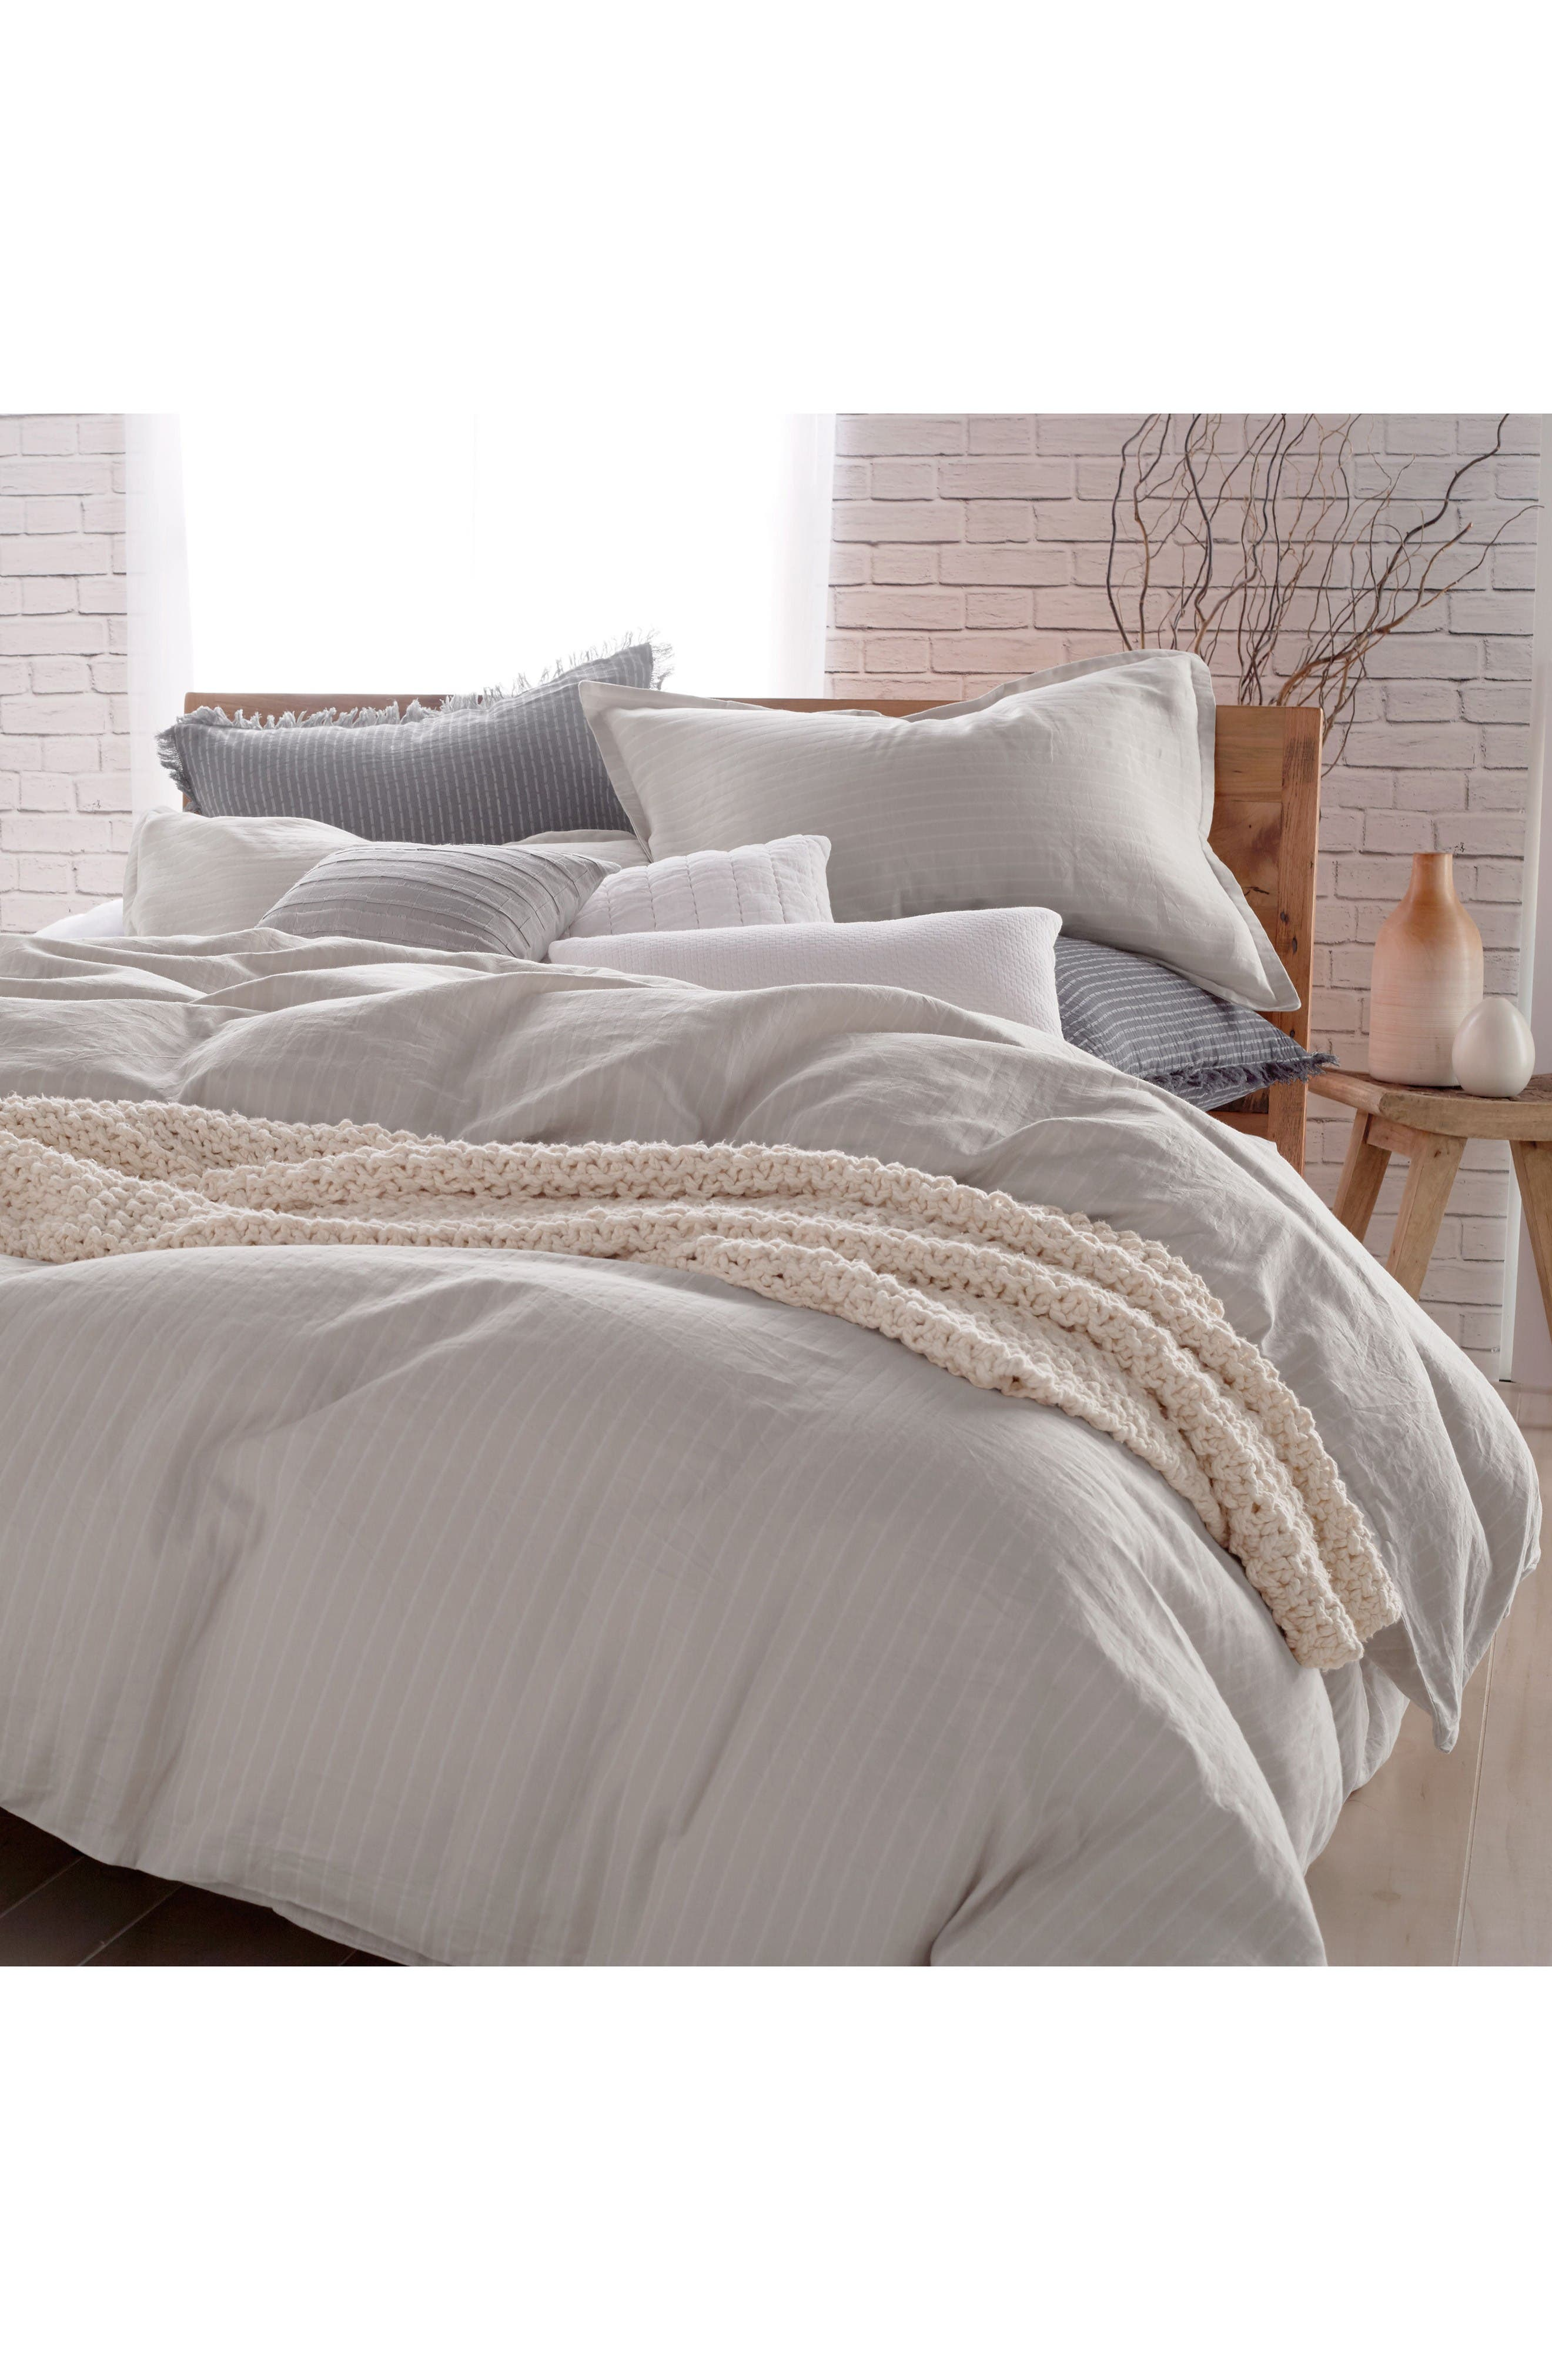 Alternate Image 1 Selected - DKNY PURE Comfy Platinum Duvet Cover